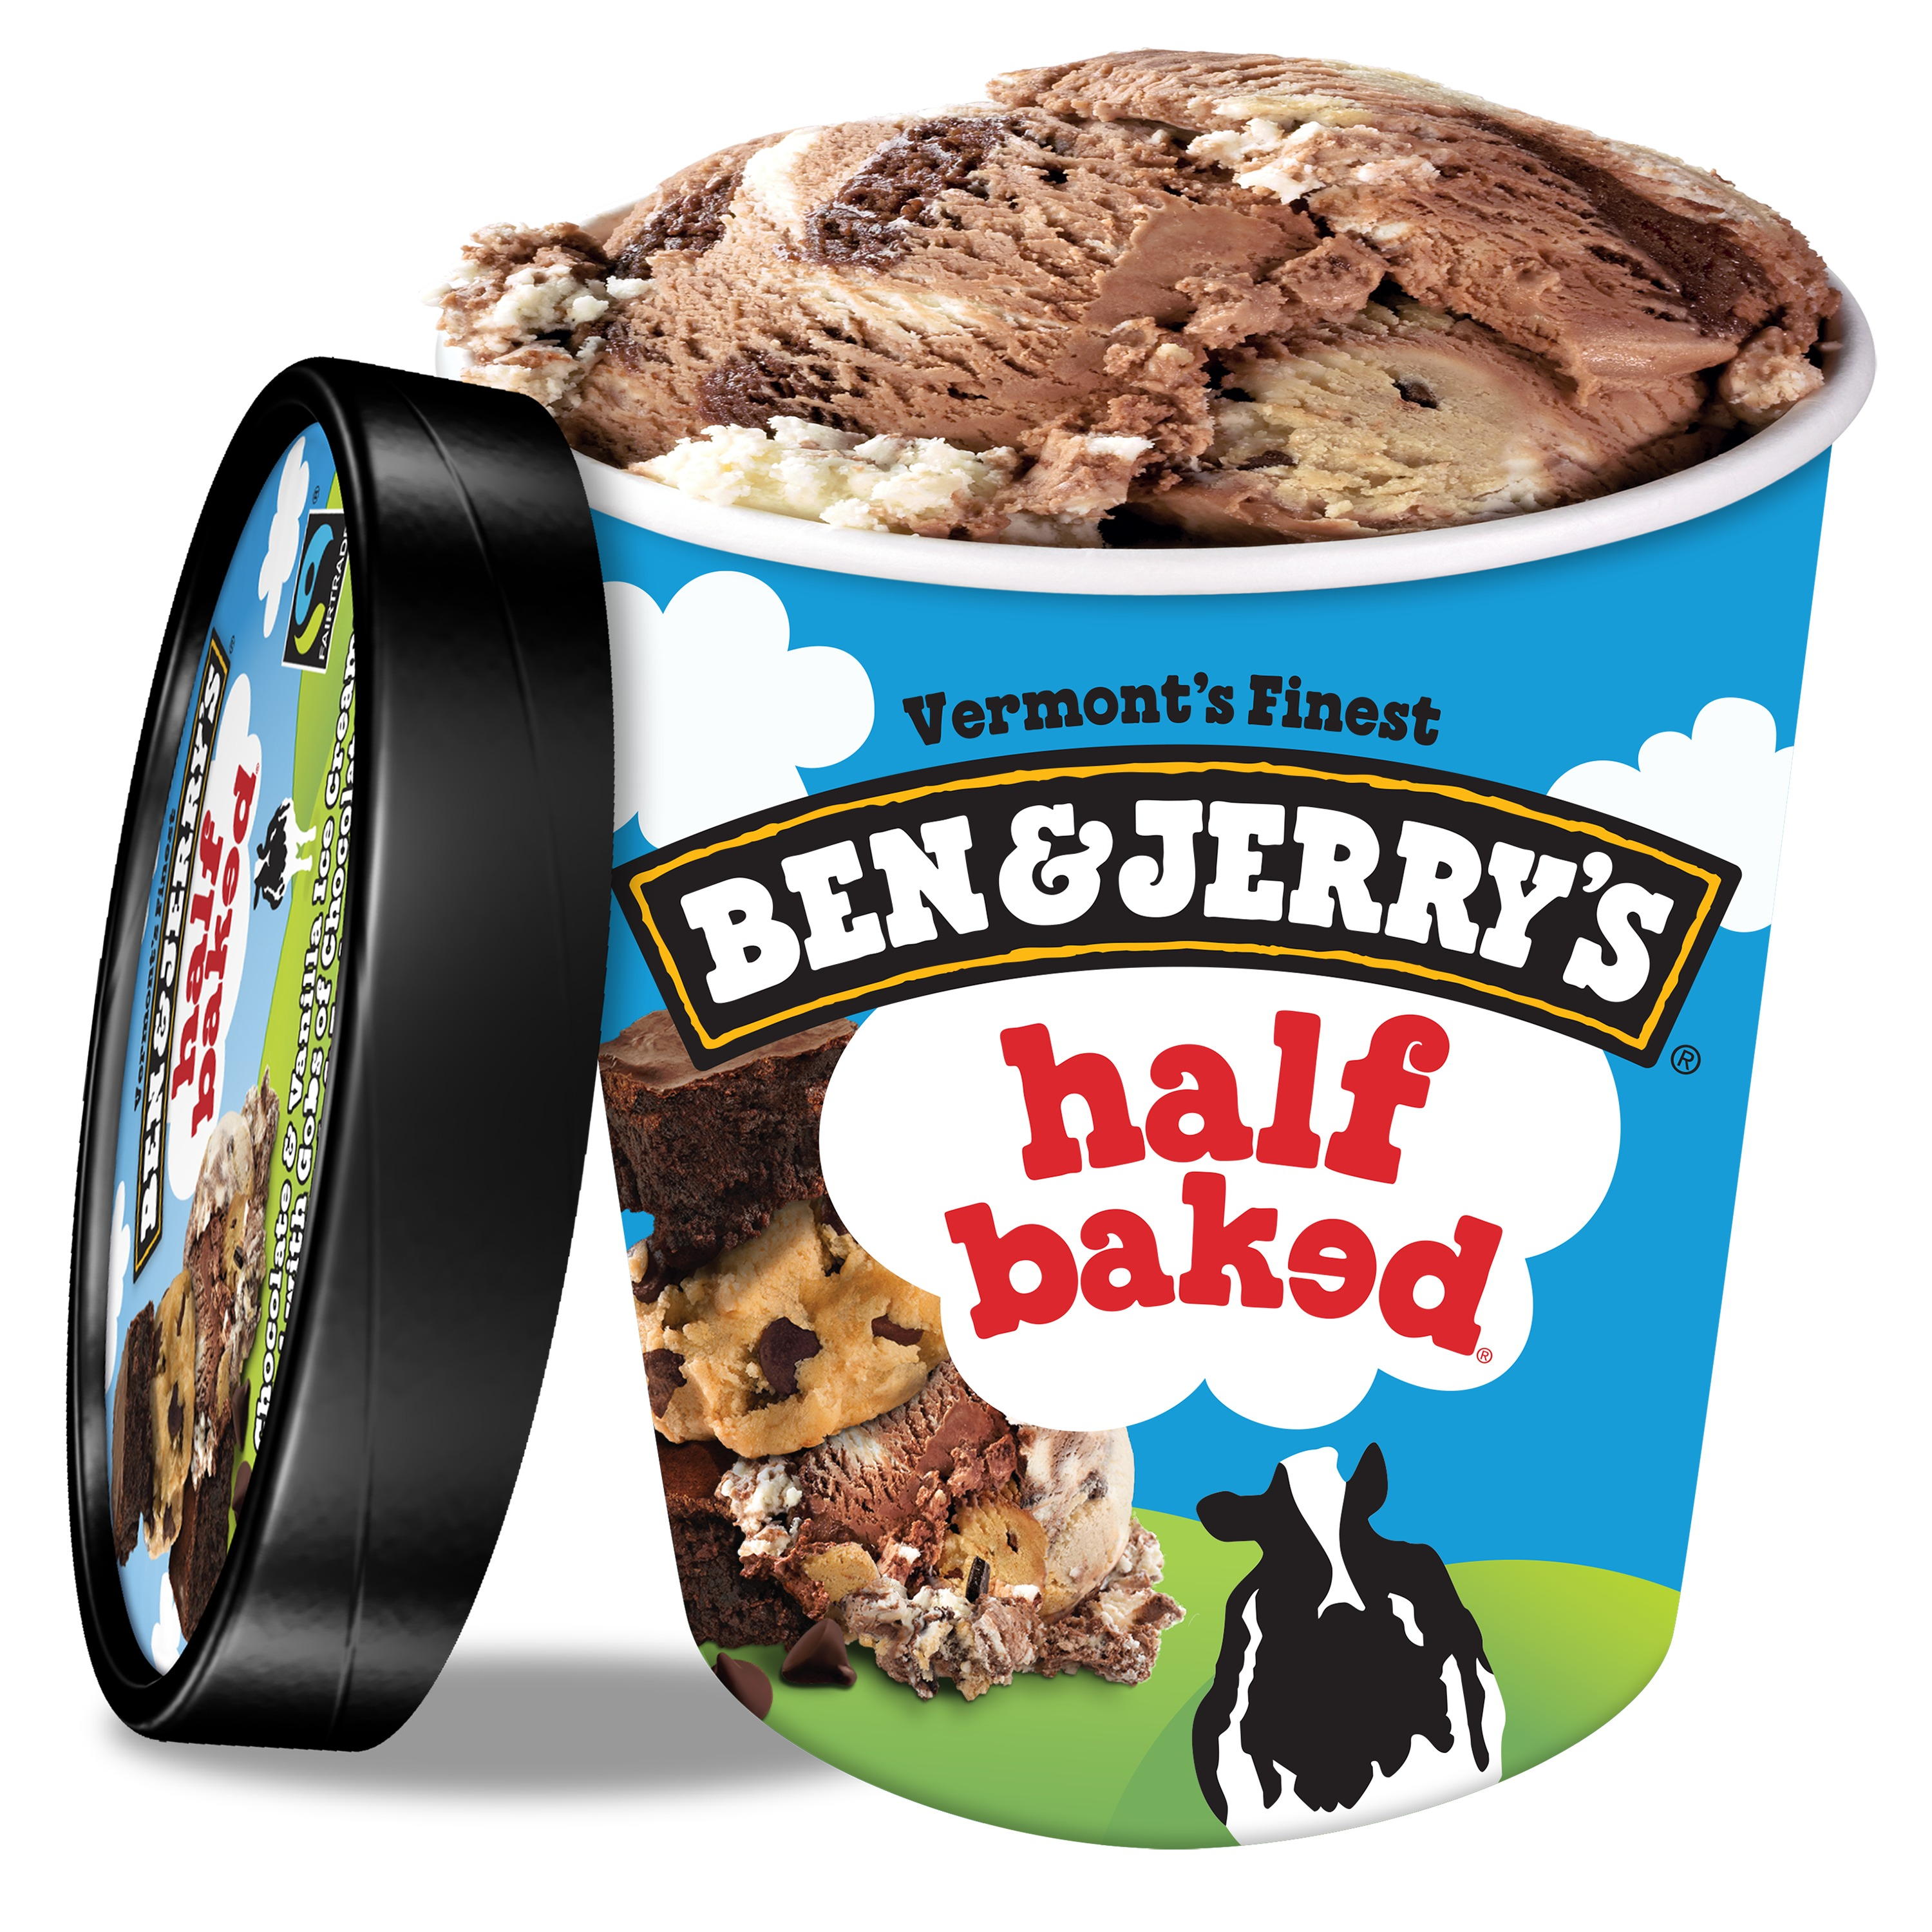 Ben & Jerry's Half Baked Ice Cream, 16 oz